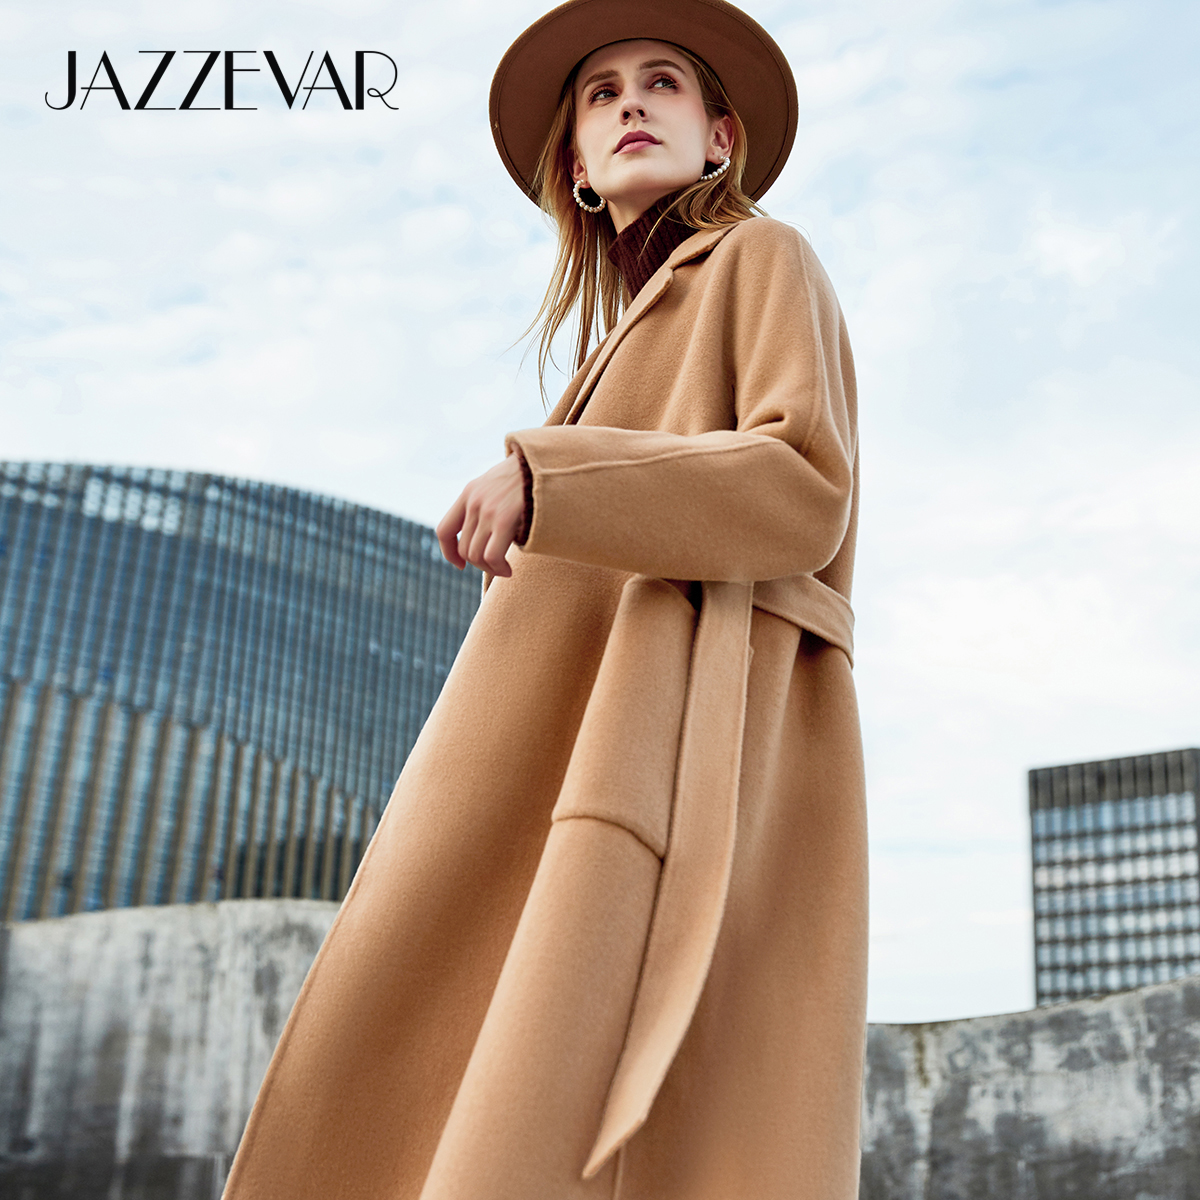 JAZZEVAR 2020 Atumn Winter New Fashion Arrival Women High Quality Outerwear For Lady Classic Double sided Hand sewn Woollen Coat|Wool & Blends| - AliExpress